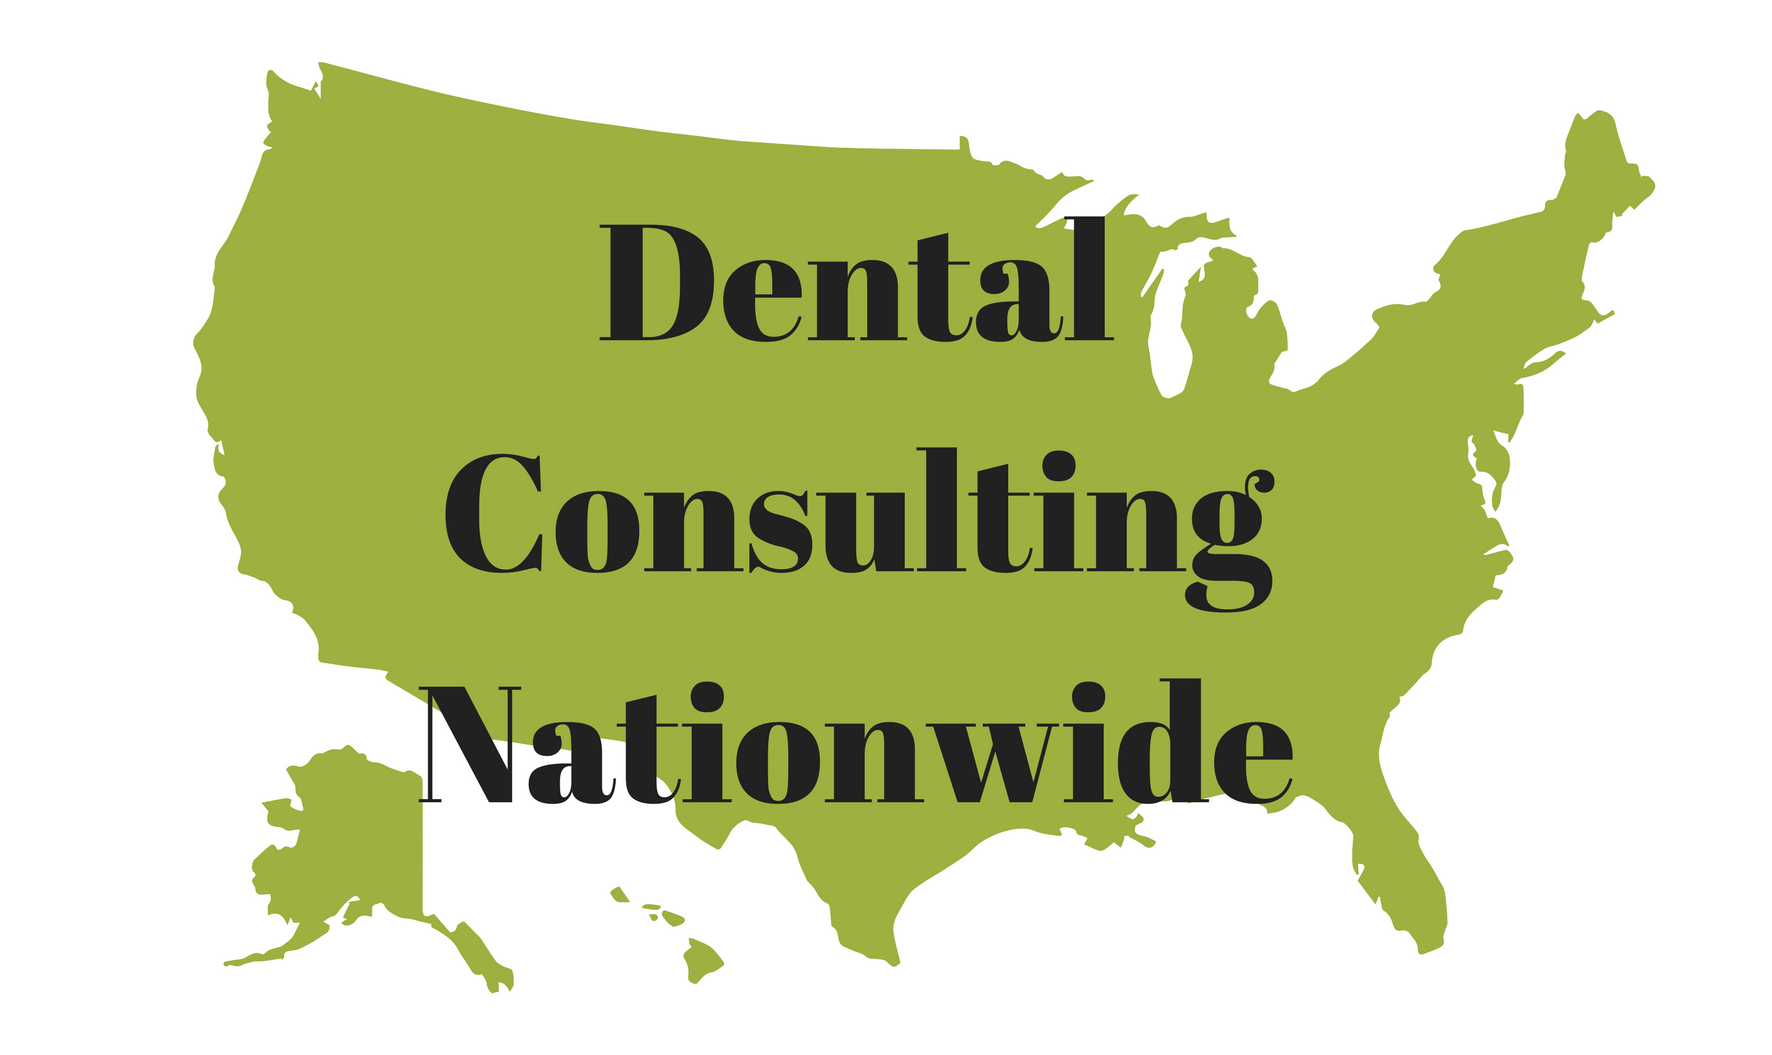 Today's Dental Consulting